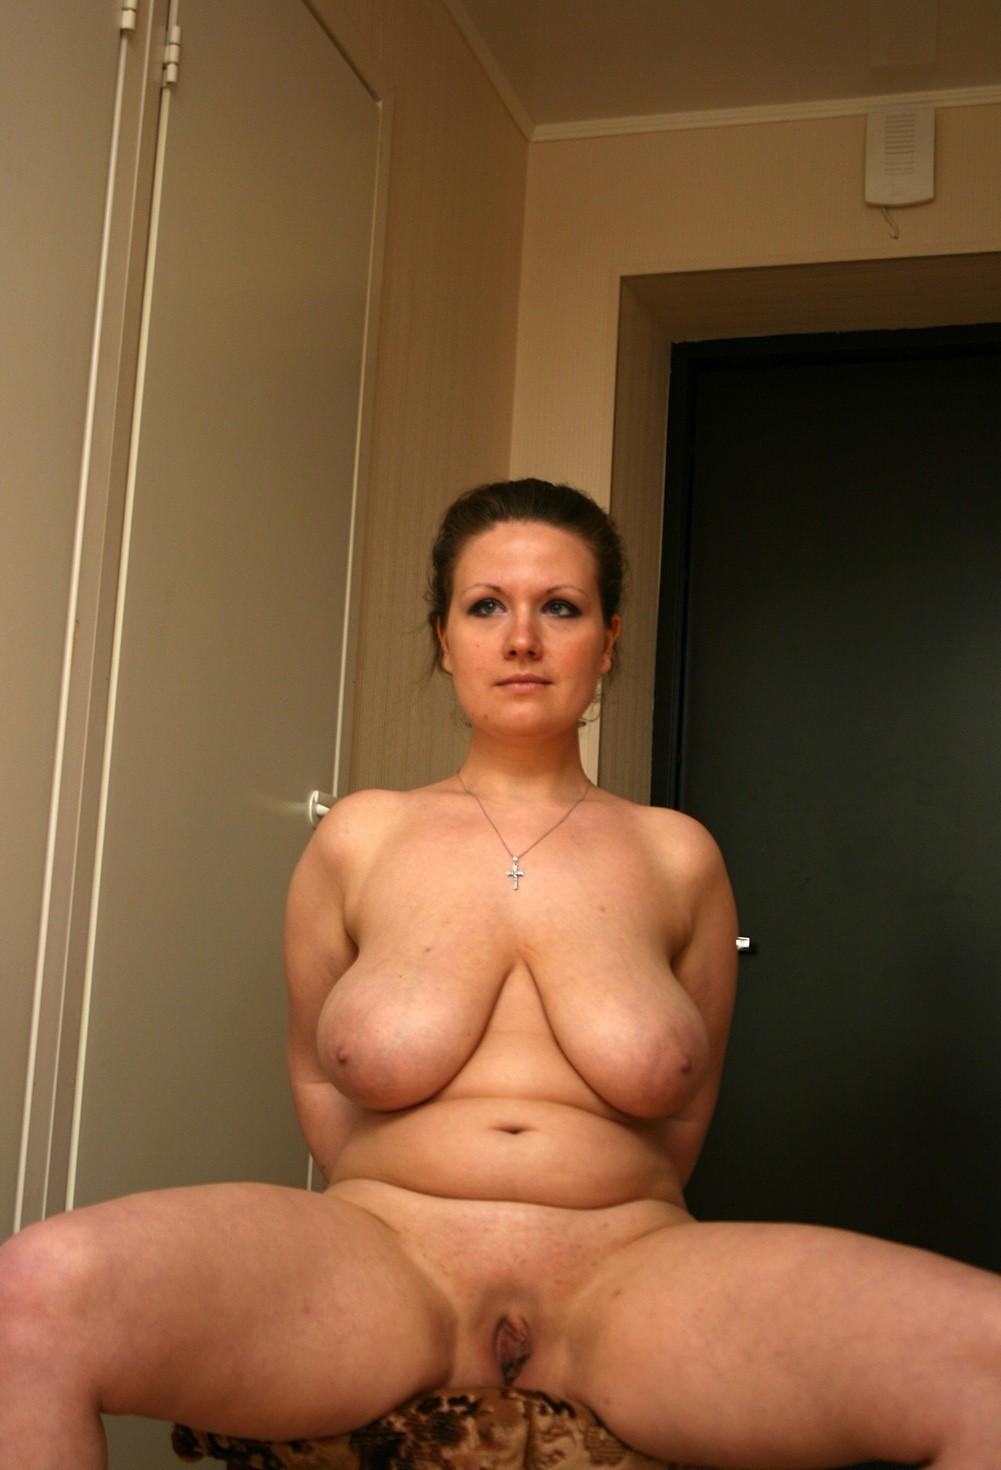 Picture with tags: Naked, Interesting, Porn